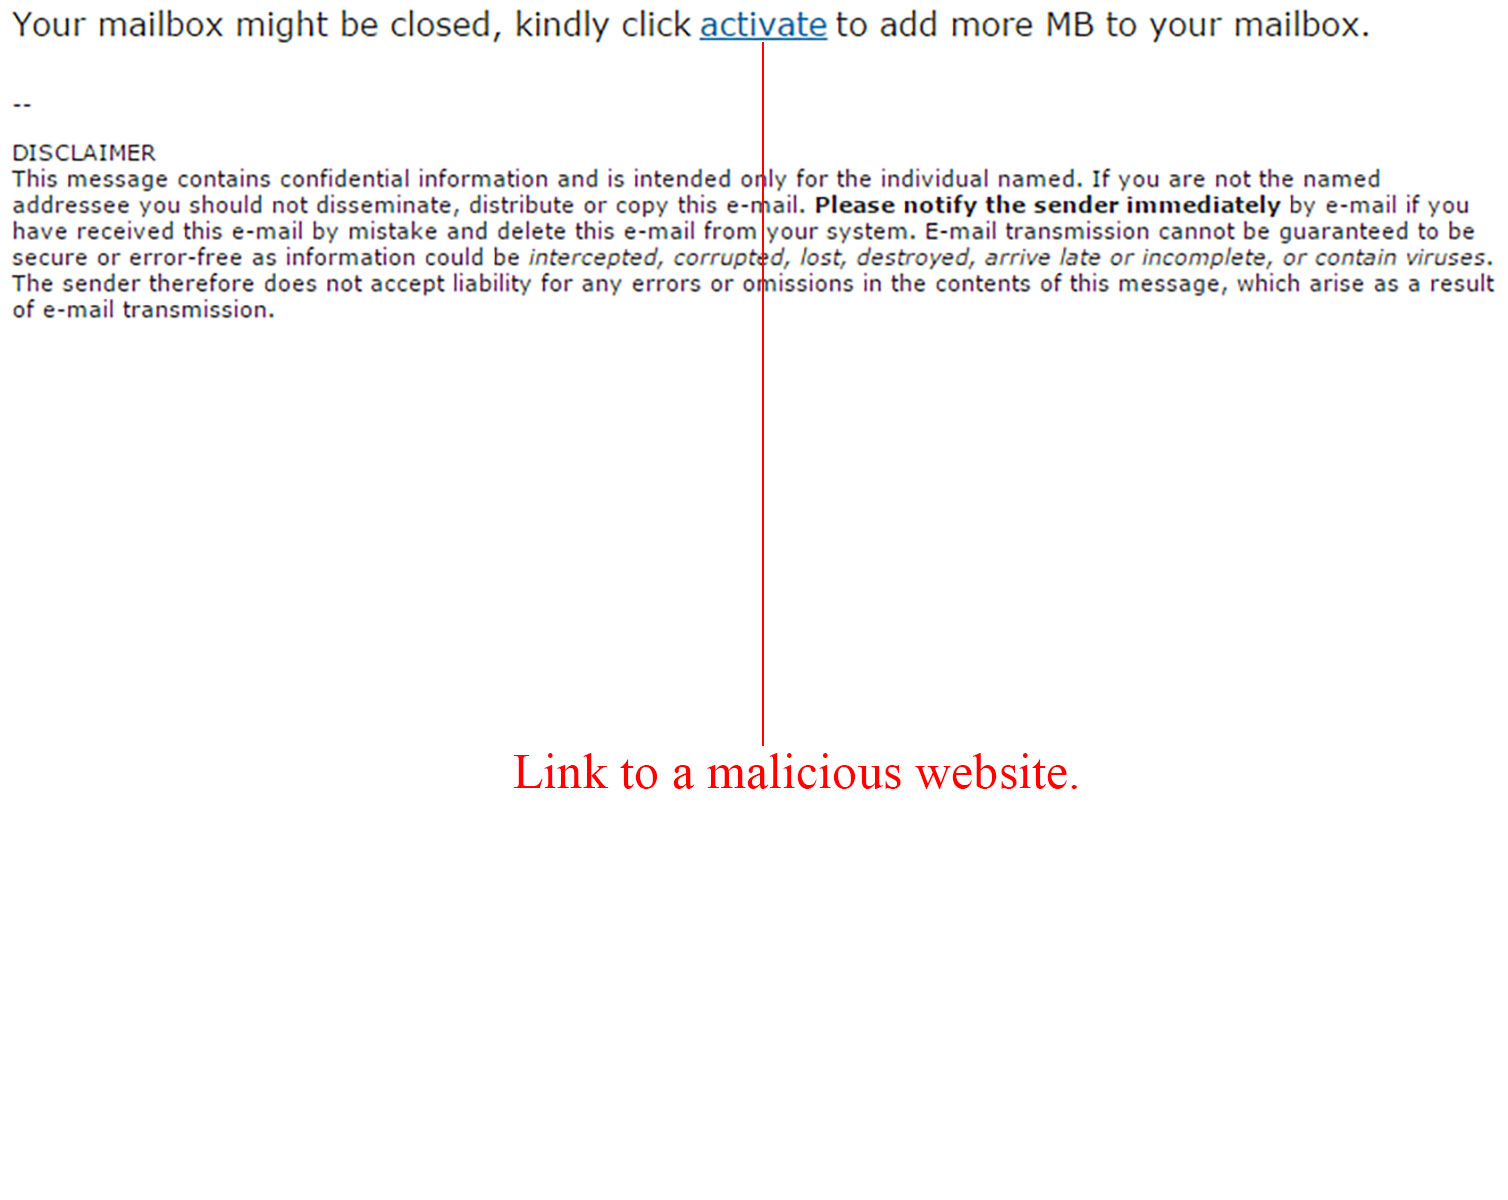 MailShark Warning Email Closed Phishing Scam